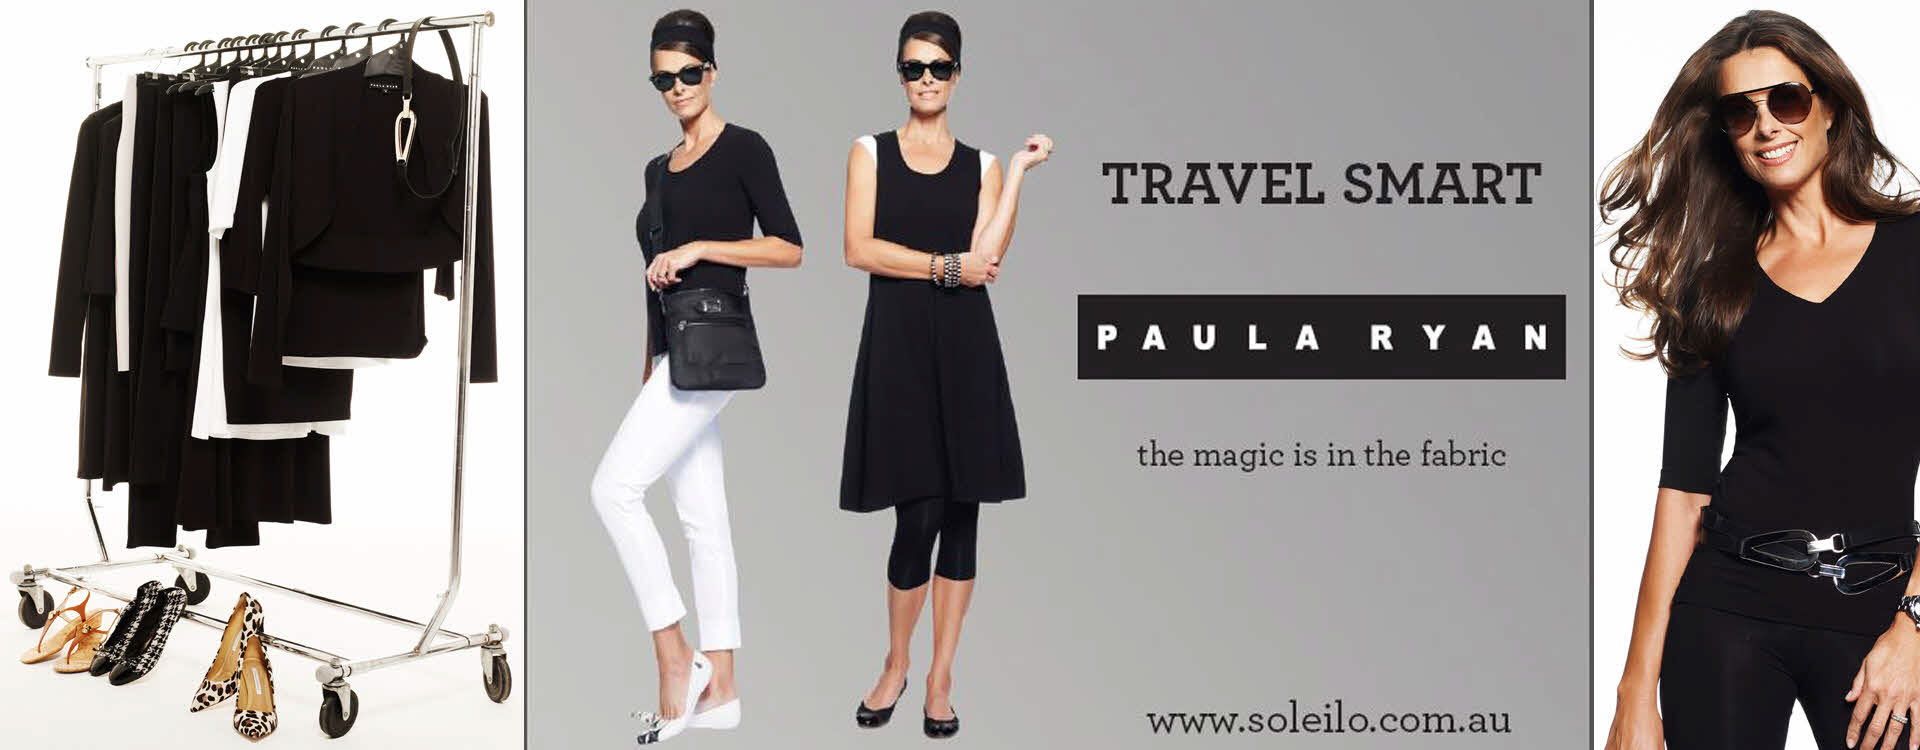 Paula Ryan TRAVEL Wardrobe